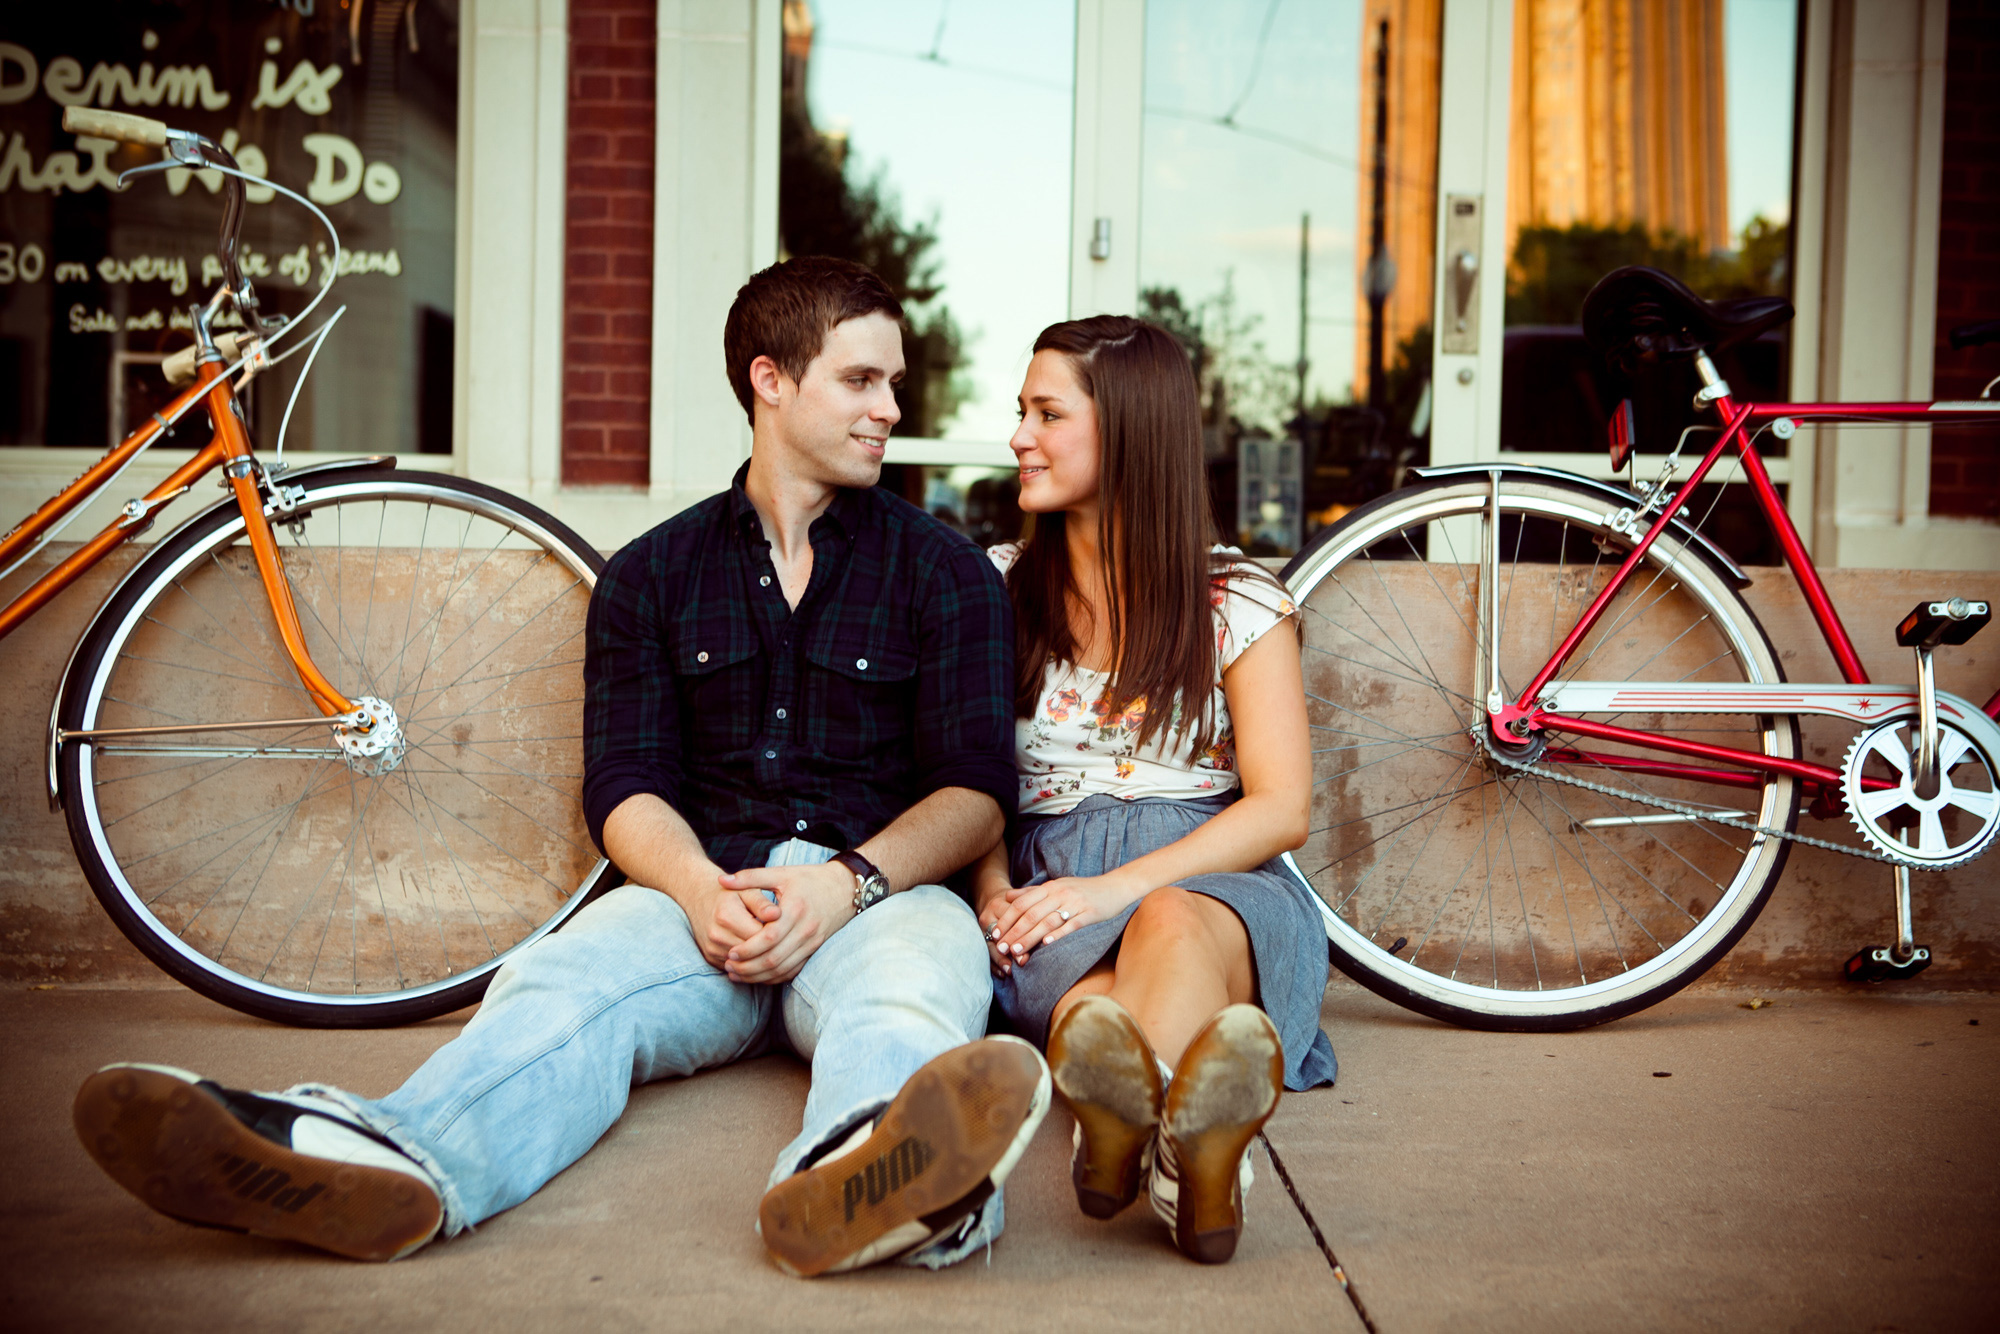 Engagement Photography Couple Riding Bicycles Uptown Dallas Texas 2